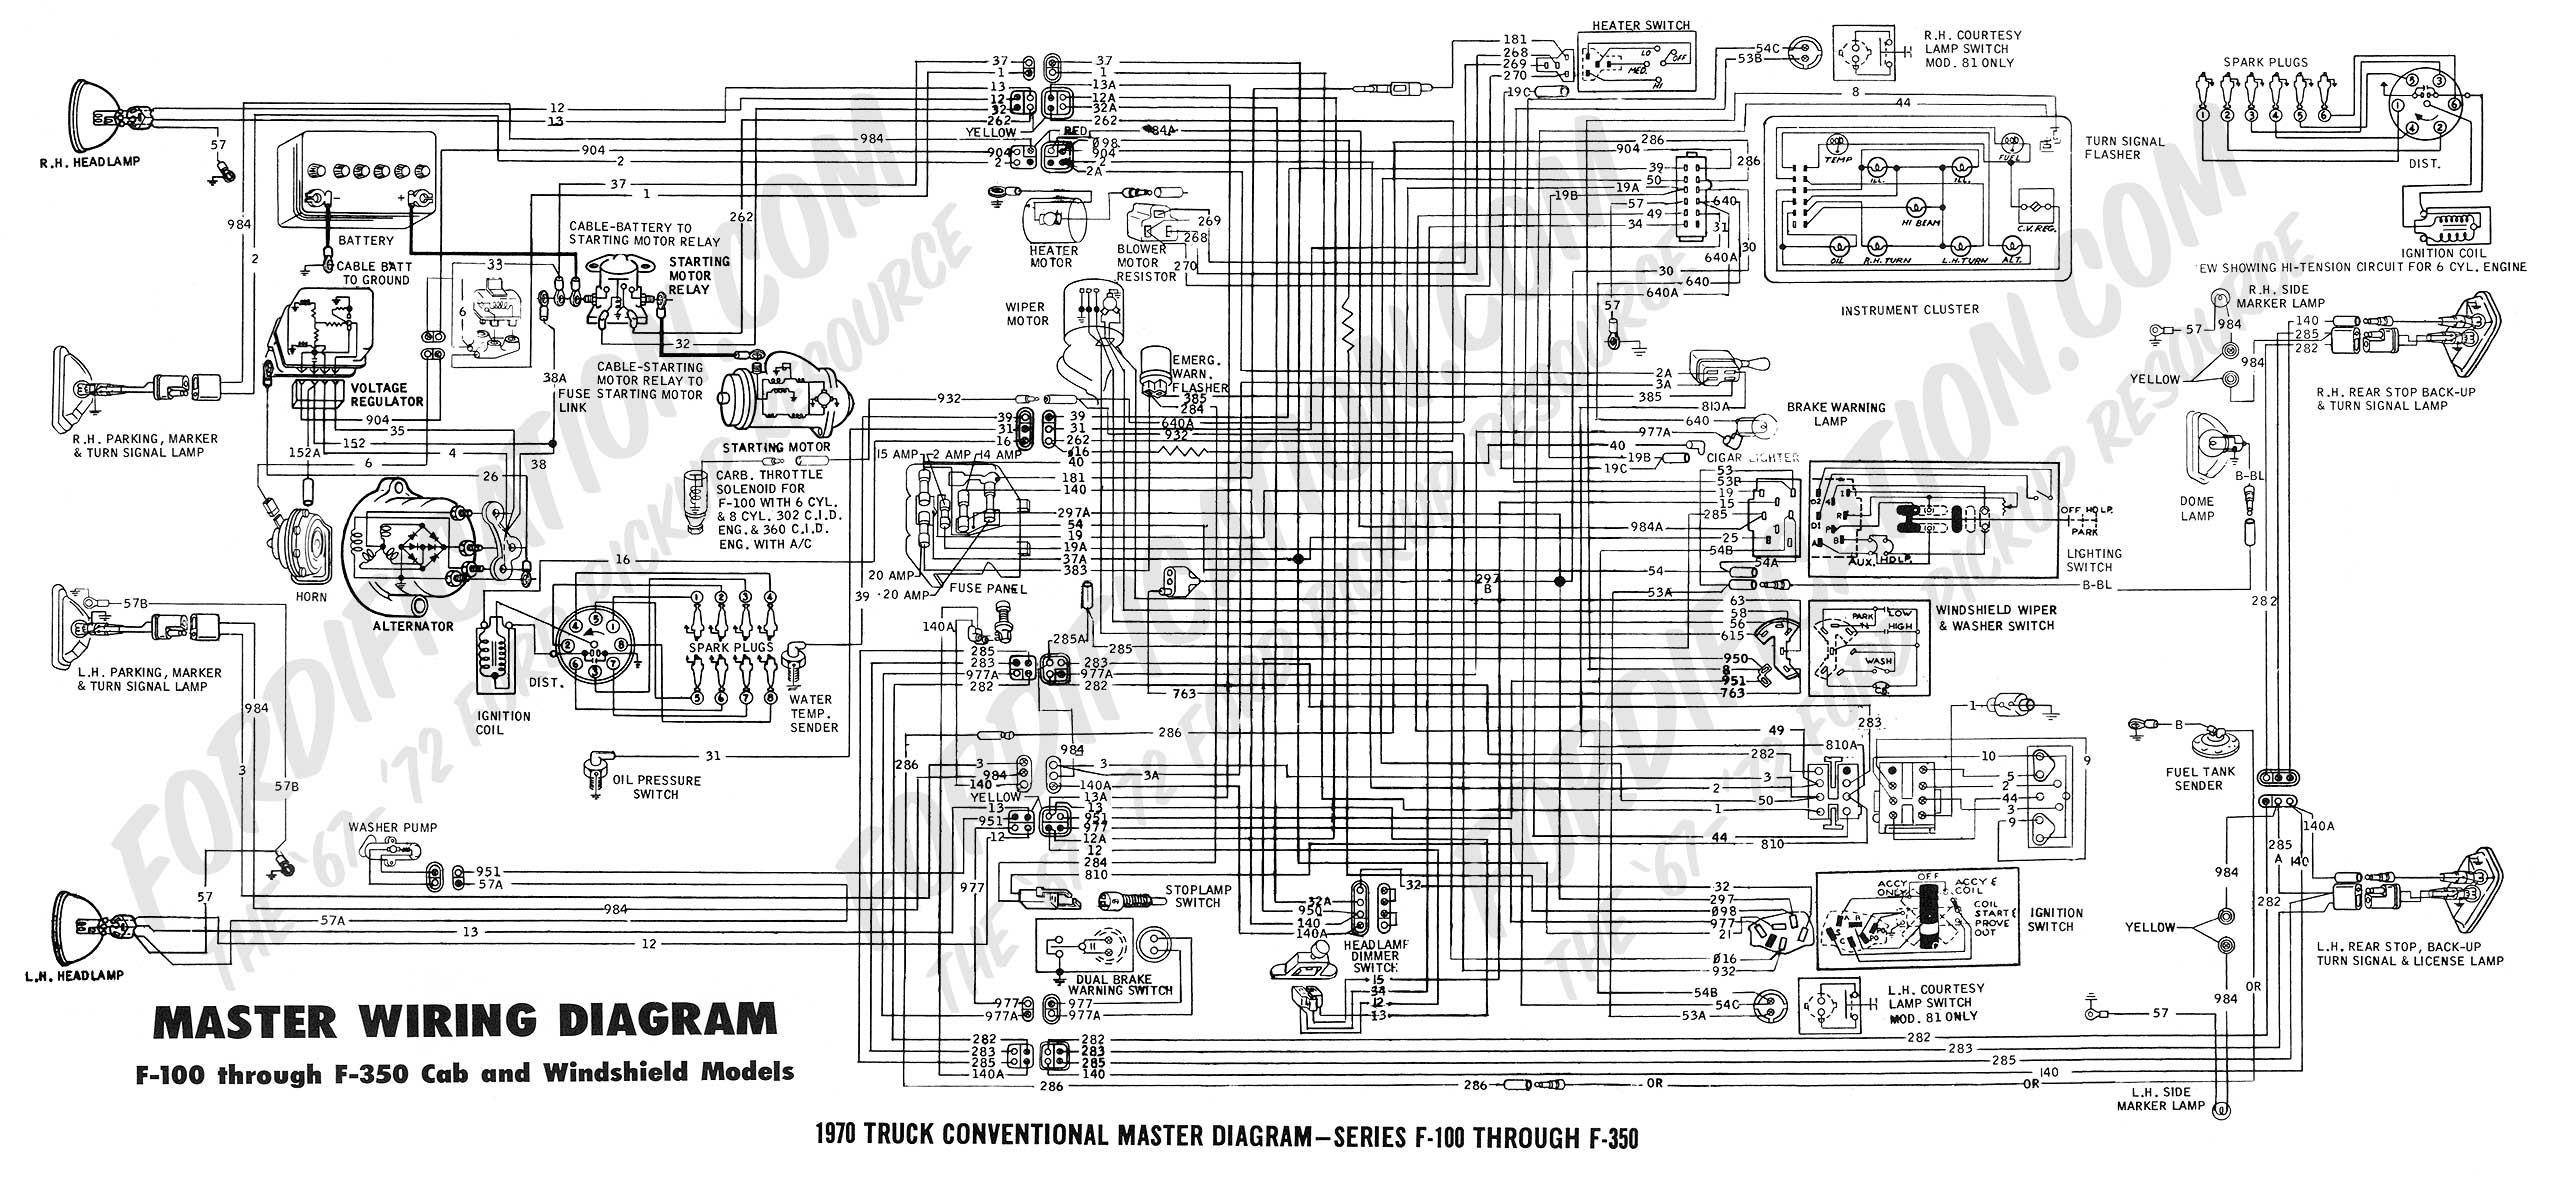 wiring diagram 70_master 1990 ford tempo wiring diagram wiring diagram simonand 1989 ford bronco wiring diagram at soozxer.org